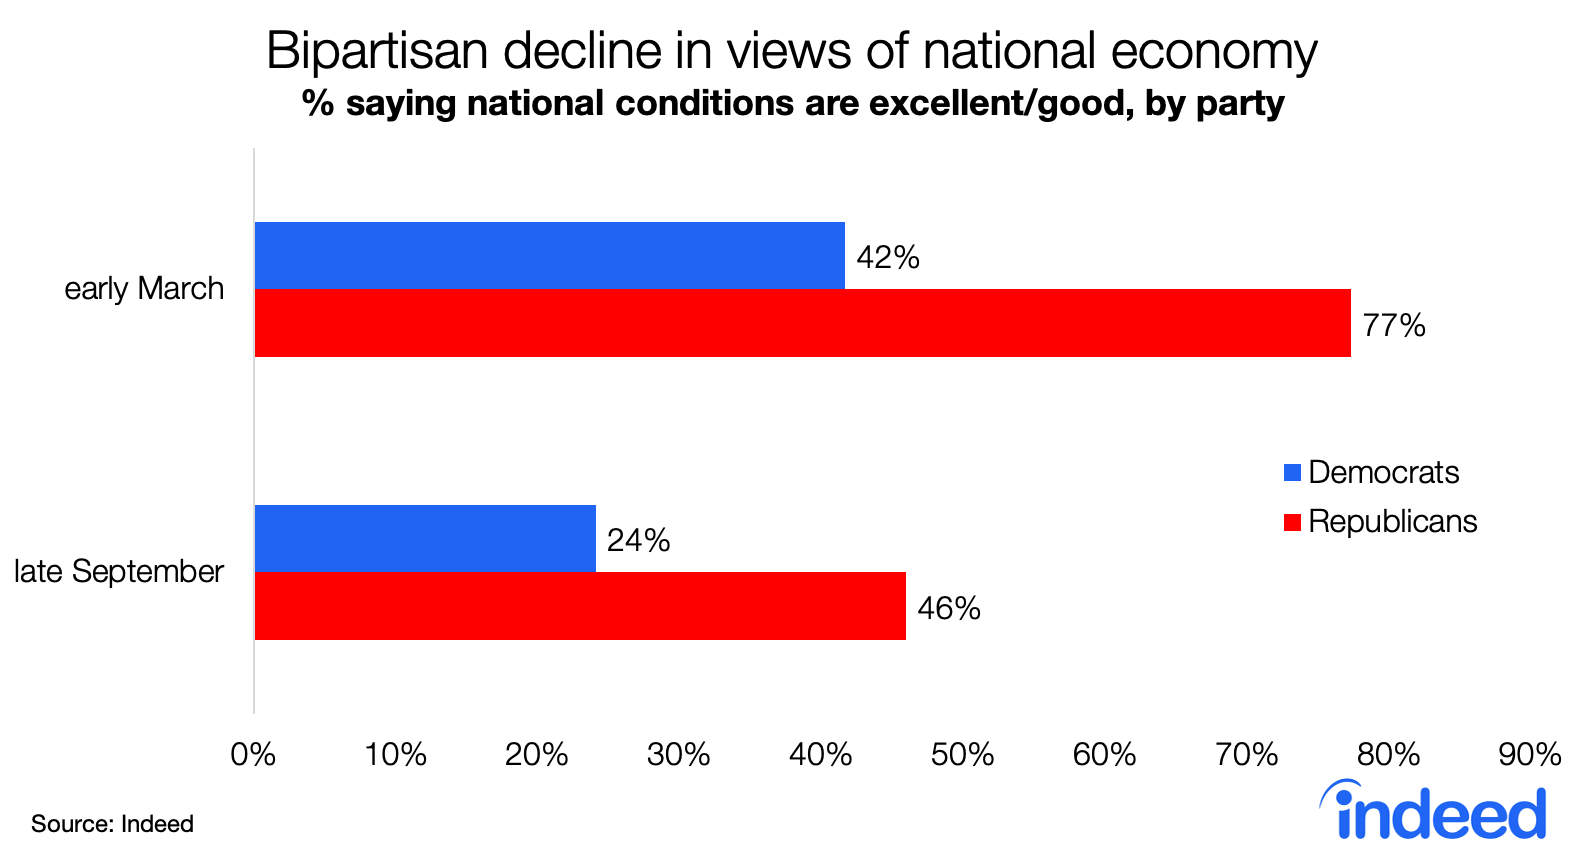 Bar chart showing bipartisan decline in views of national economy